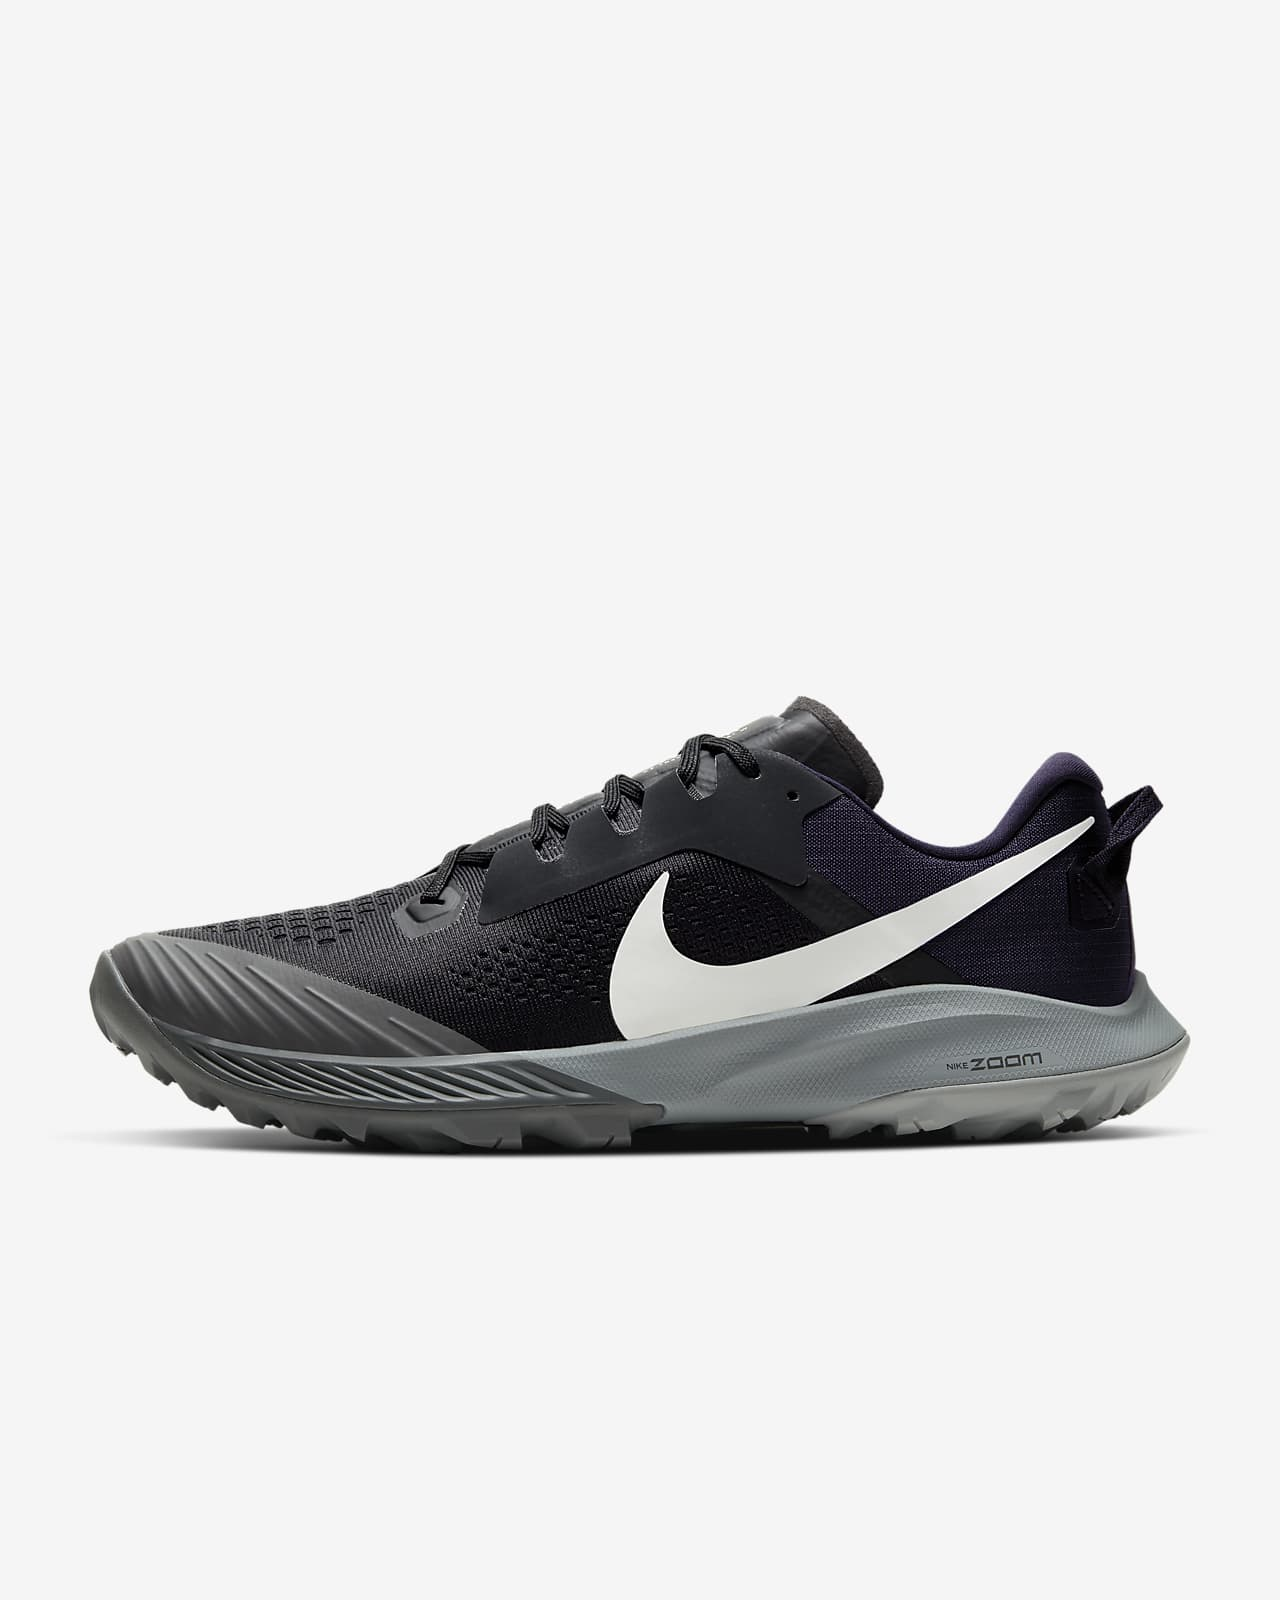 Nike Air Zoom Terra Kiger 6 Men's Trail Running Shoe